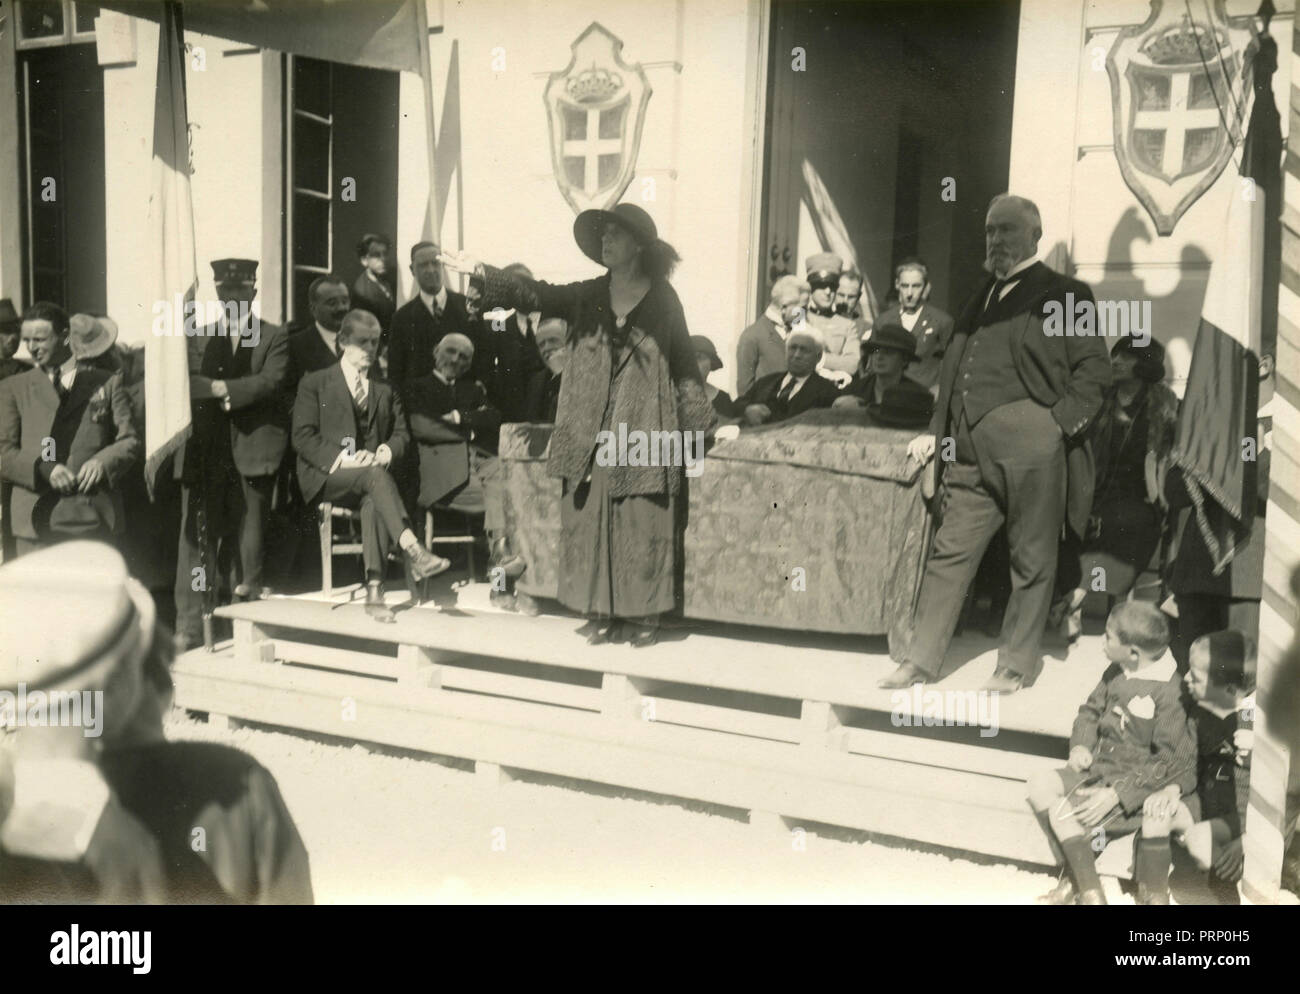 Elena of Montenegro Queen of Italy at a ceremony, Italy 1930s - Stock Image